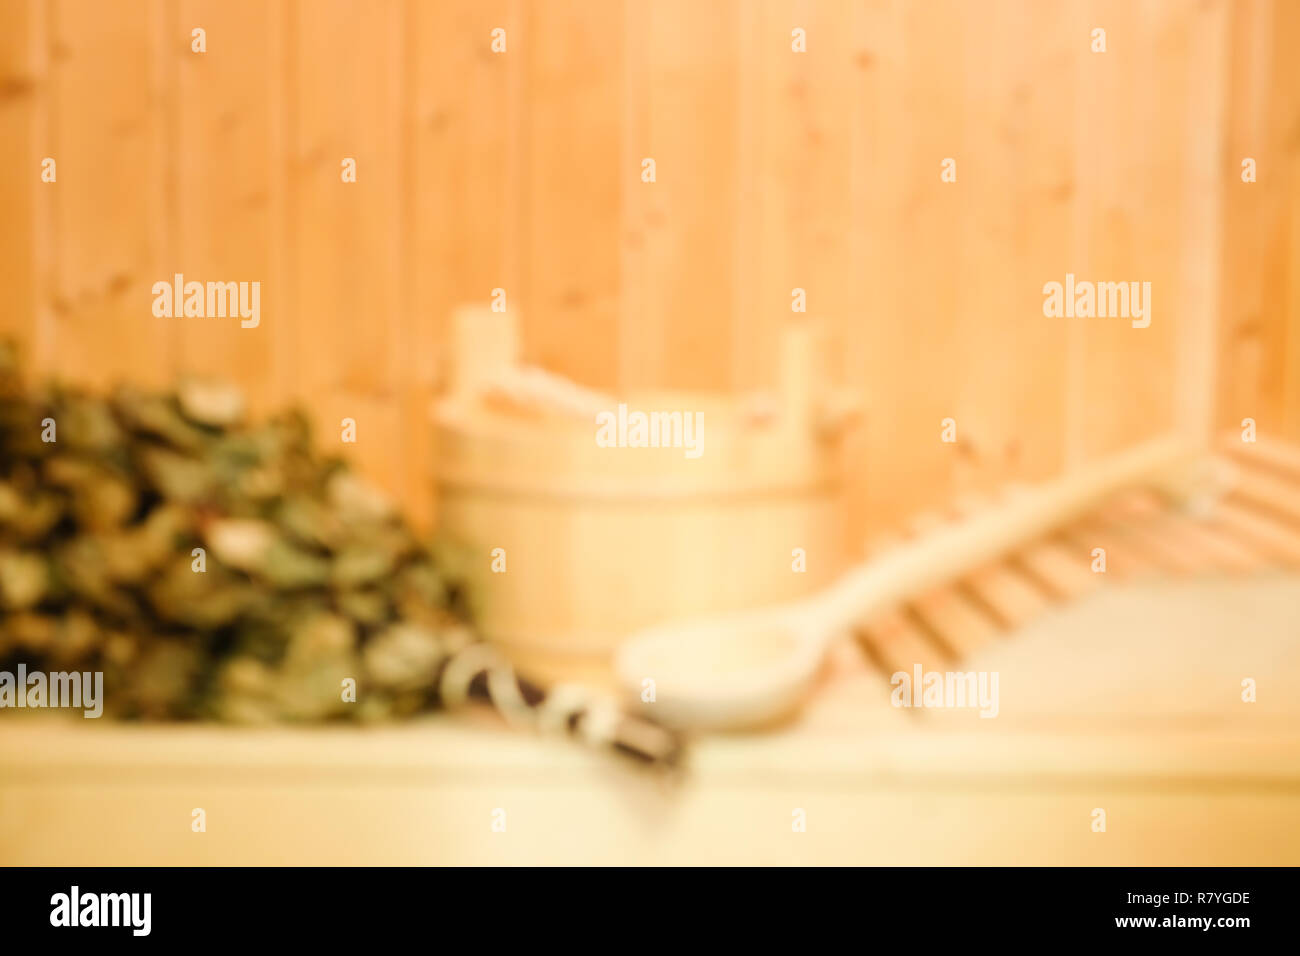 Blurred background of wooden bucket, a birch broom and other accessories in a finnish classic sauna or russian bath. Free space on a wooden wall - Stock Image